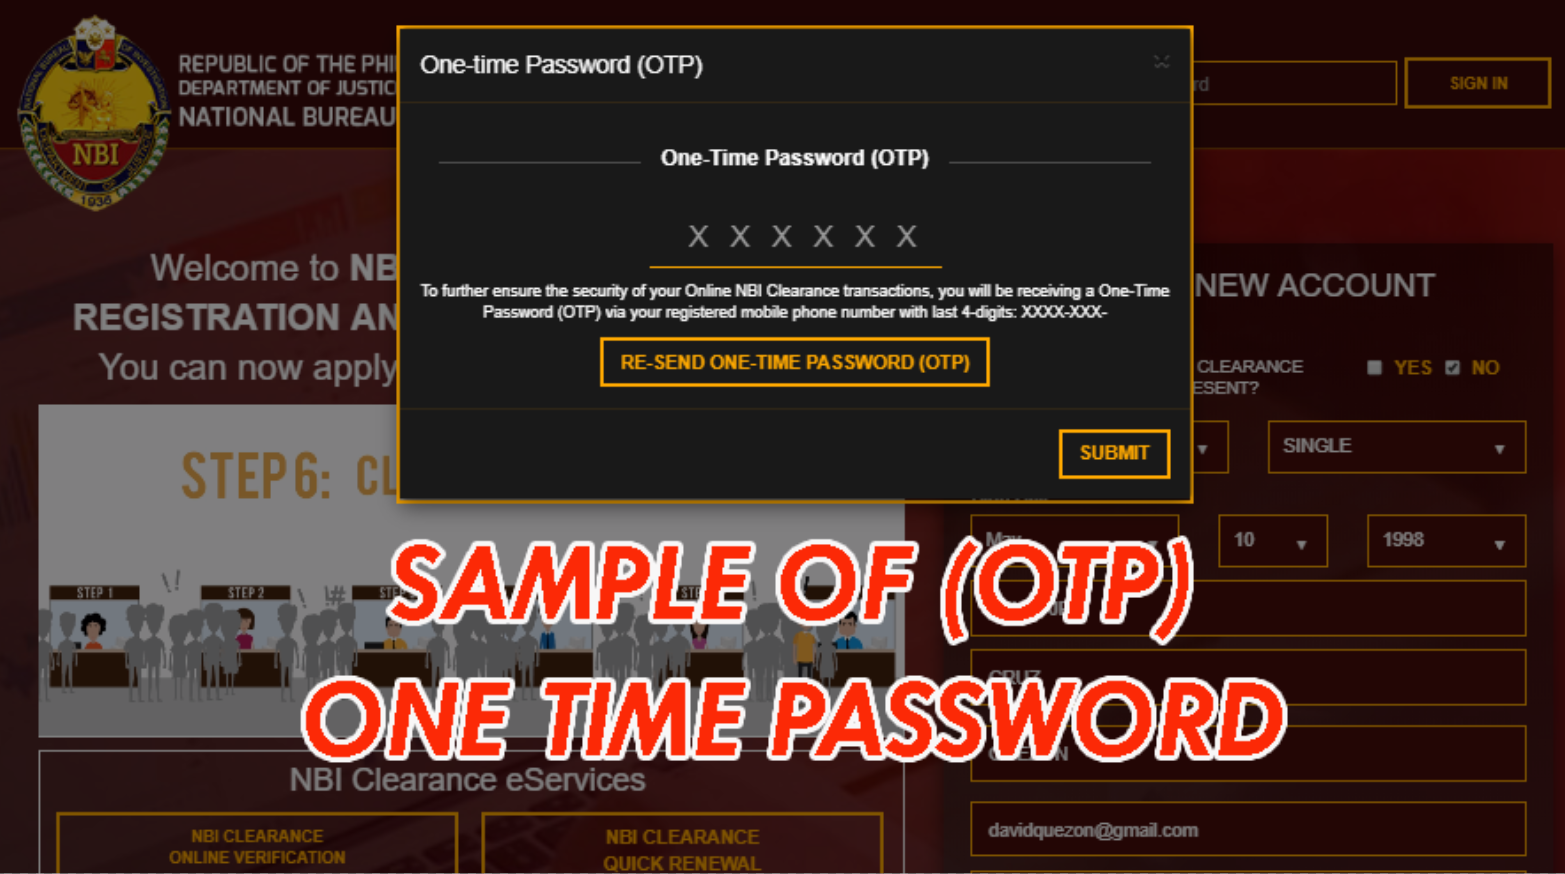 OTP FOR NBI CLEARANCE ONLINE APPLICATION FOR 2021 nbi clearance online NBI CLEARANCE ONLINE APPLICATION FOR 2021 SAMPLE OF OTP ONE TIME PASSWORD